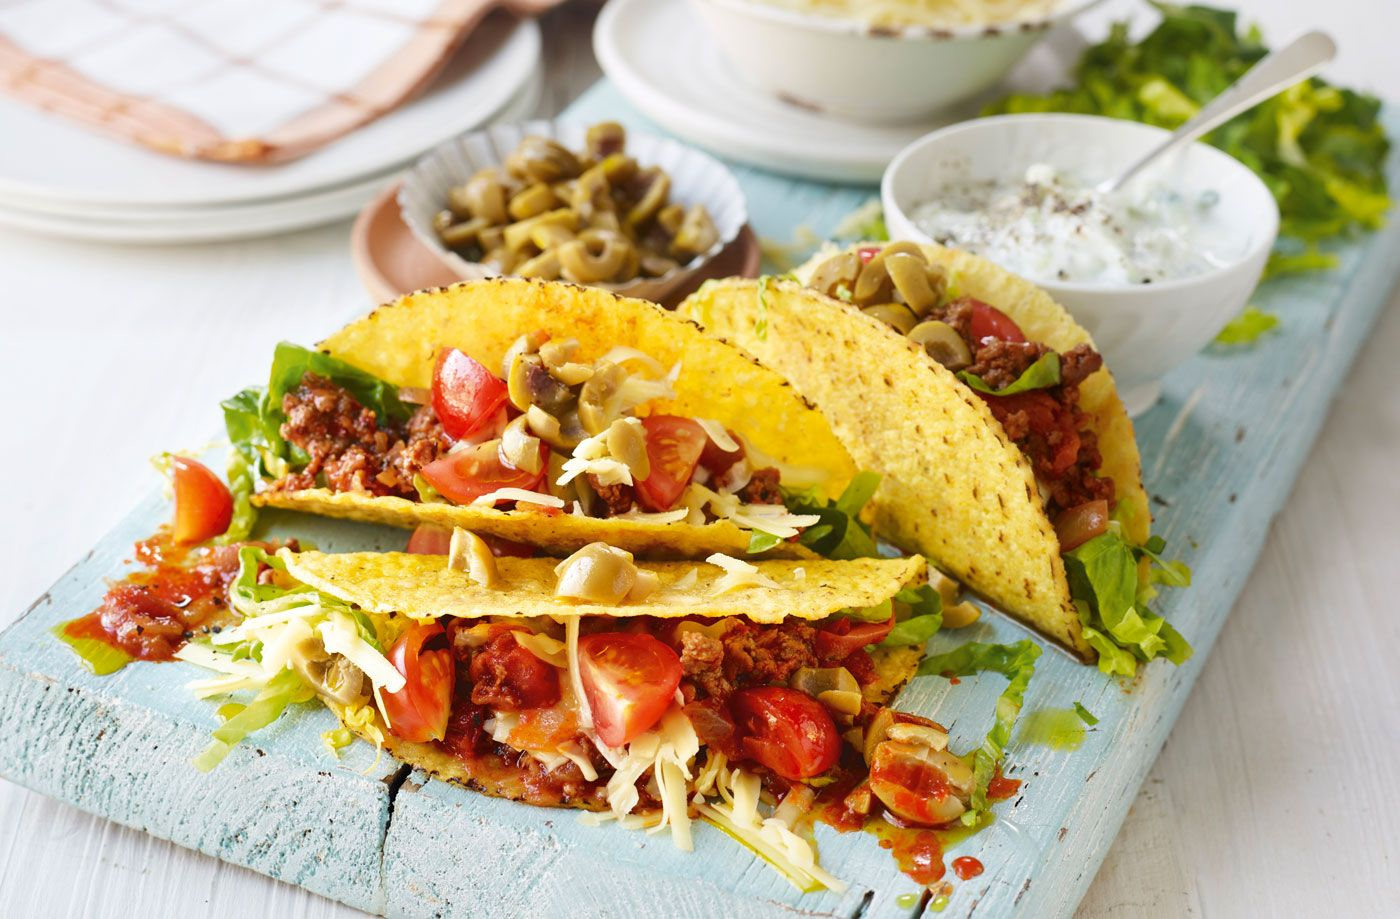 Harissa lamb tacos recipe real foods lambs and mexican recipes forumfinder Image collections